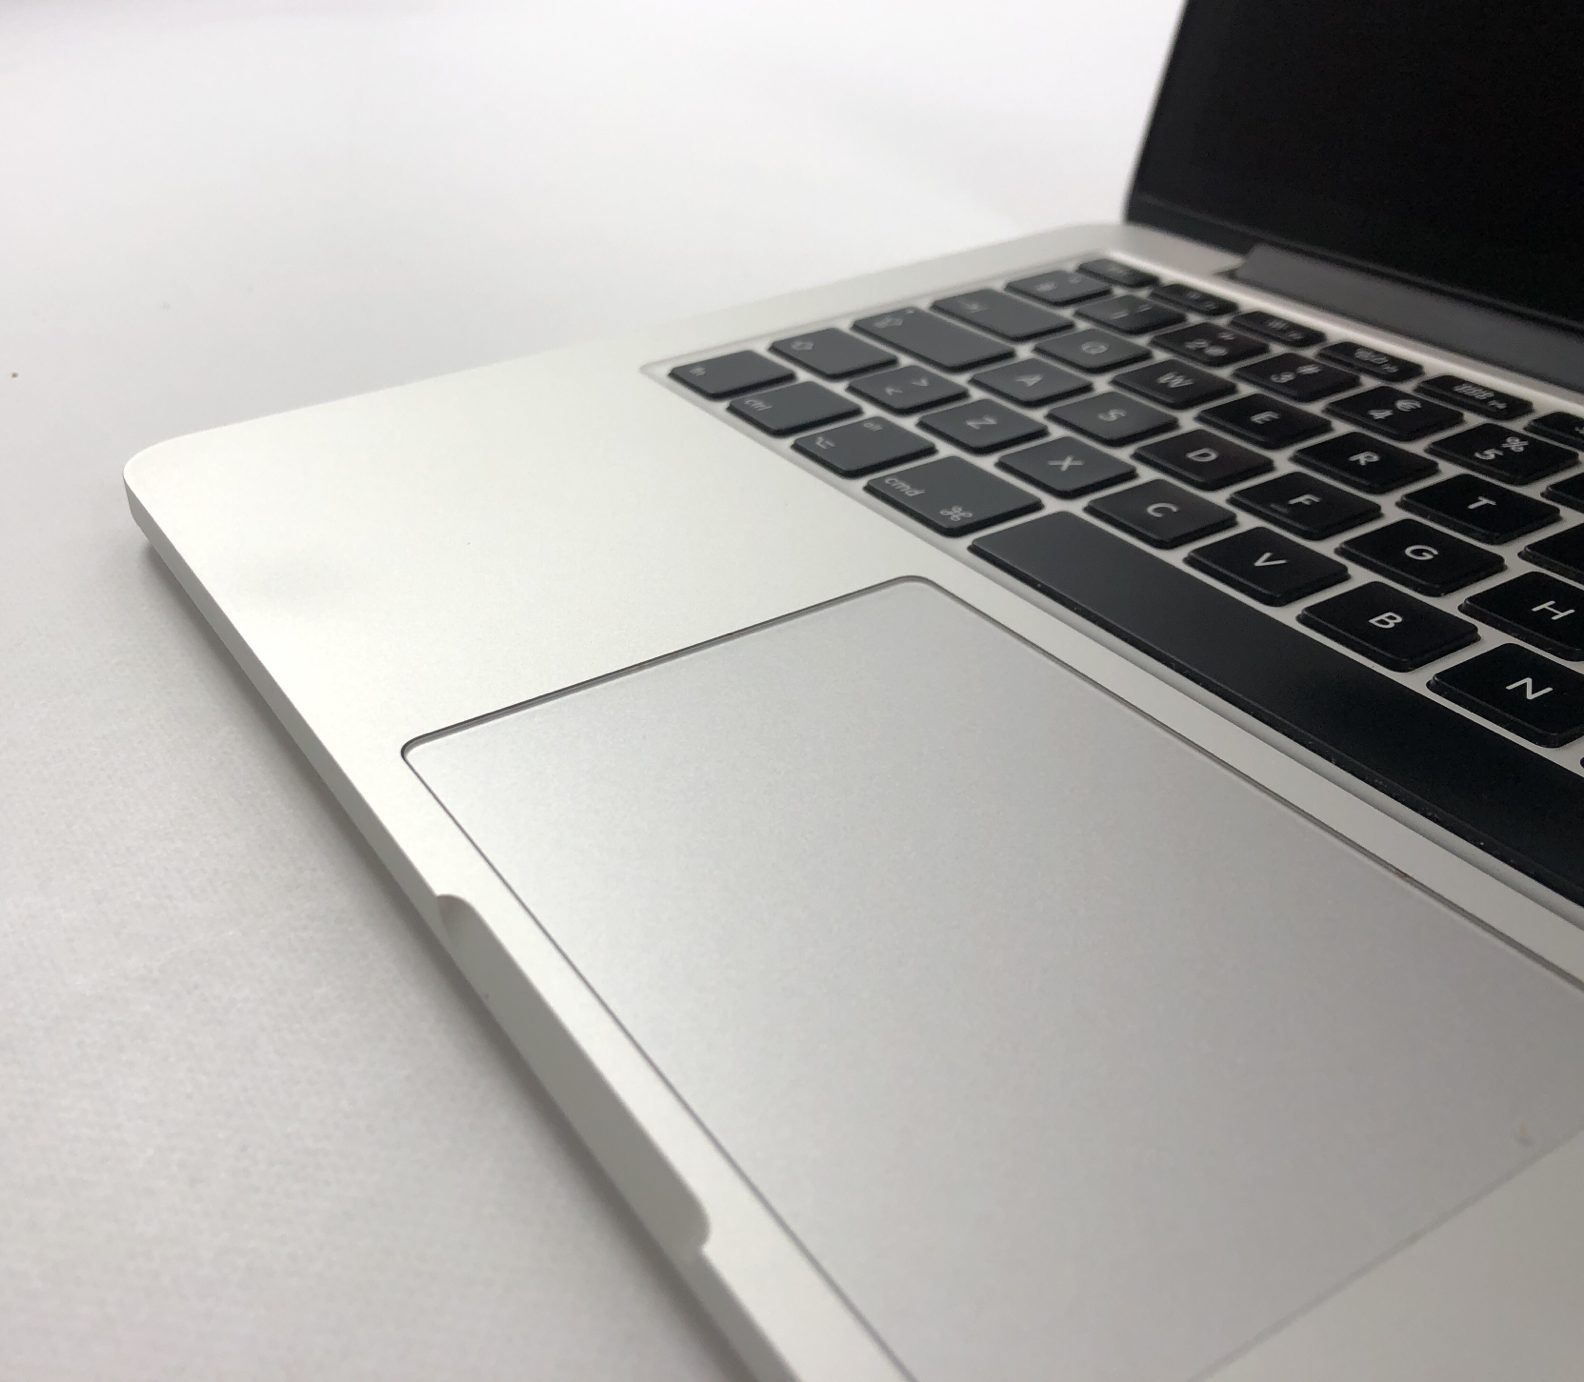 "MacBook Pro Retina 13"" Early 2015 (Intel Core i5 2.7 GHz 8 GB RAM 256 GB SSD), Intel Core i5 2.7 GHz, 8 GB RAM, 256 GB SSD, bild 3"